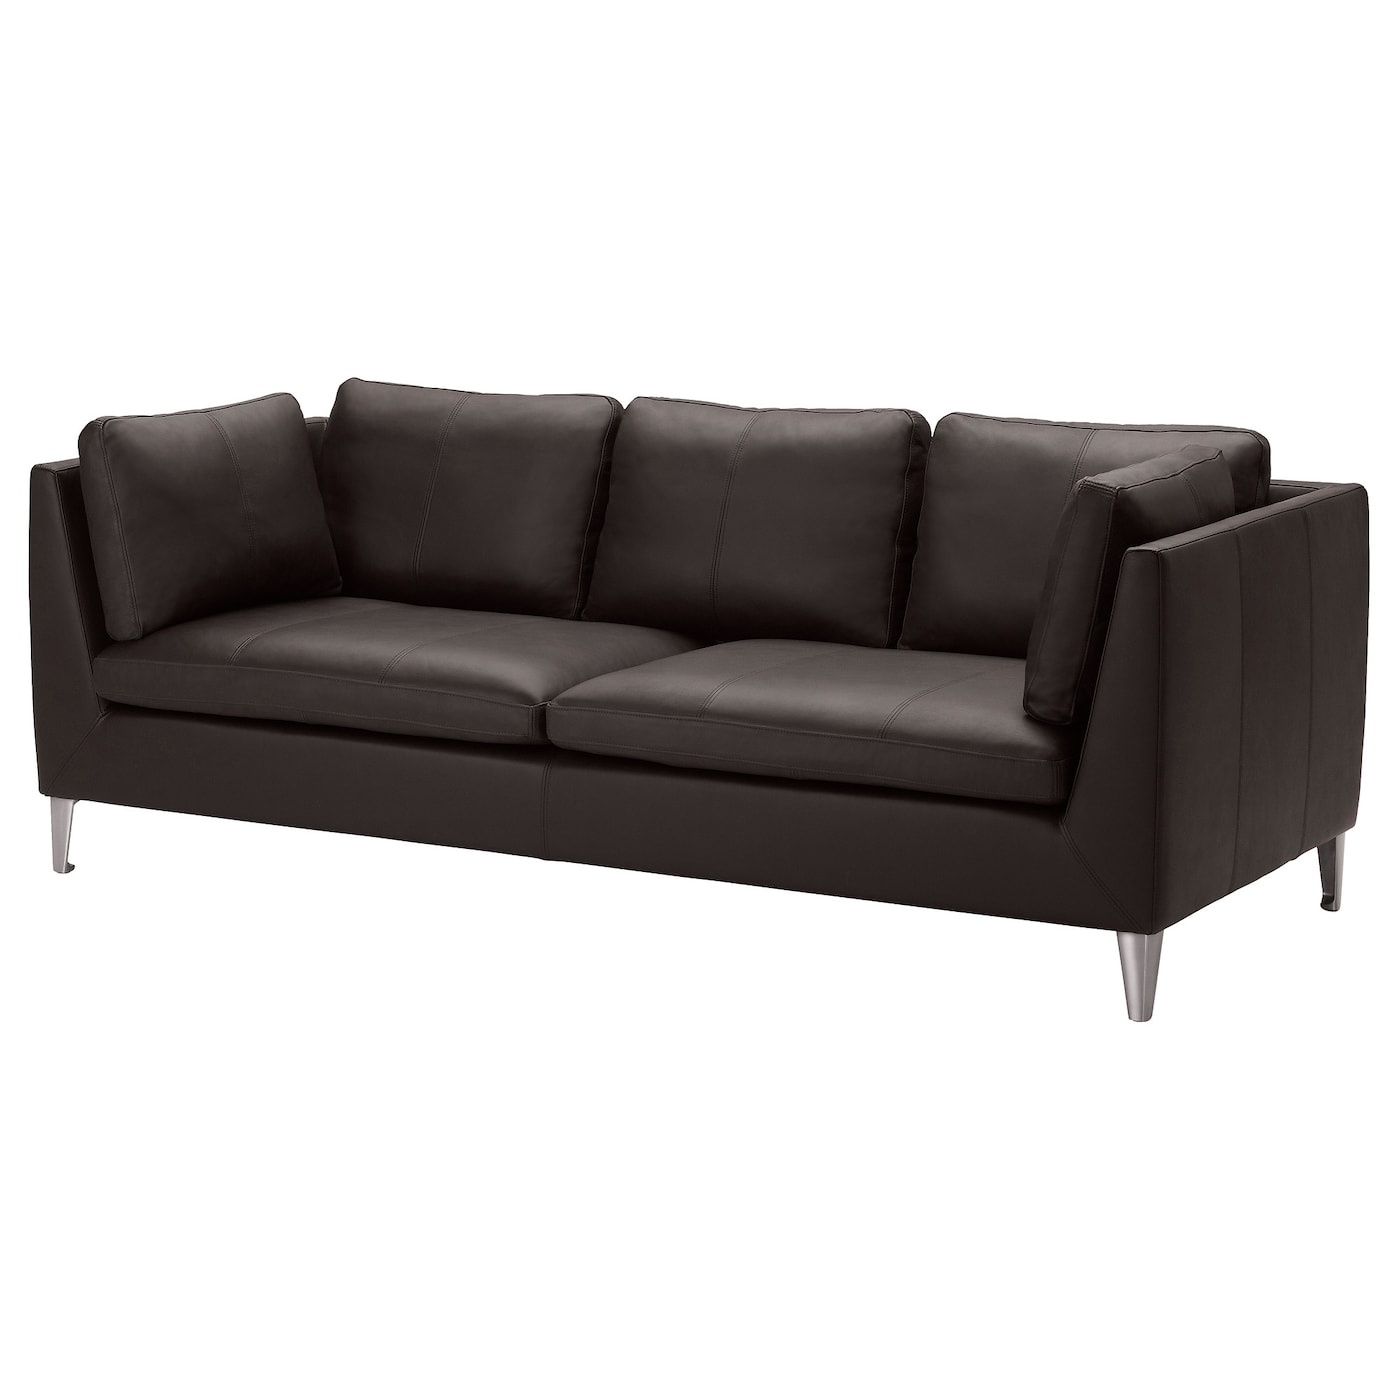 Stockholm three seat sofa seglora dark brown ikea for Ikea canape angle cuir